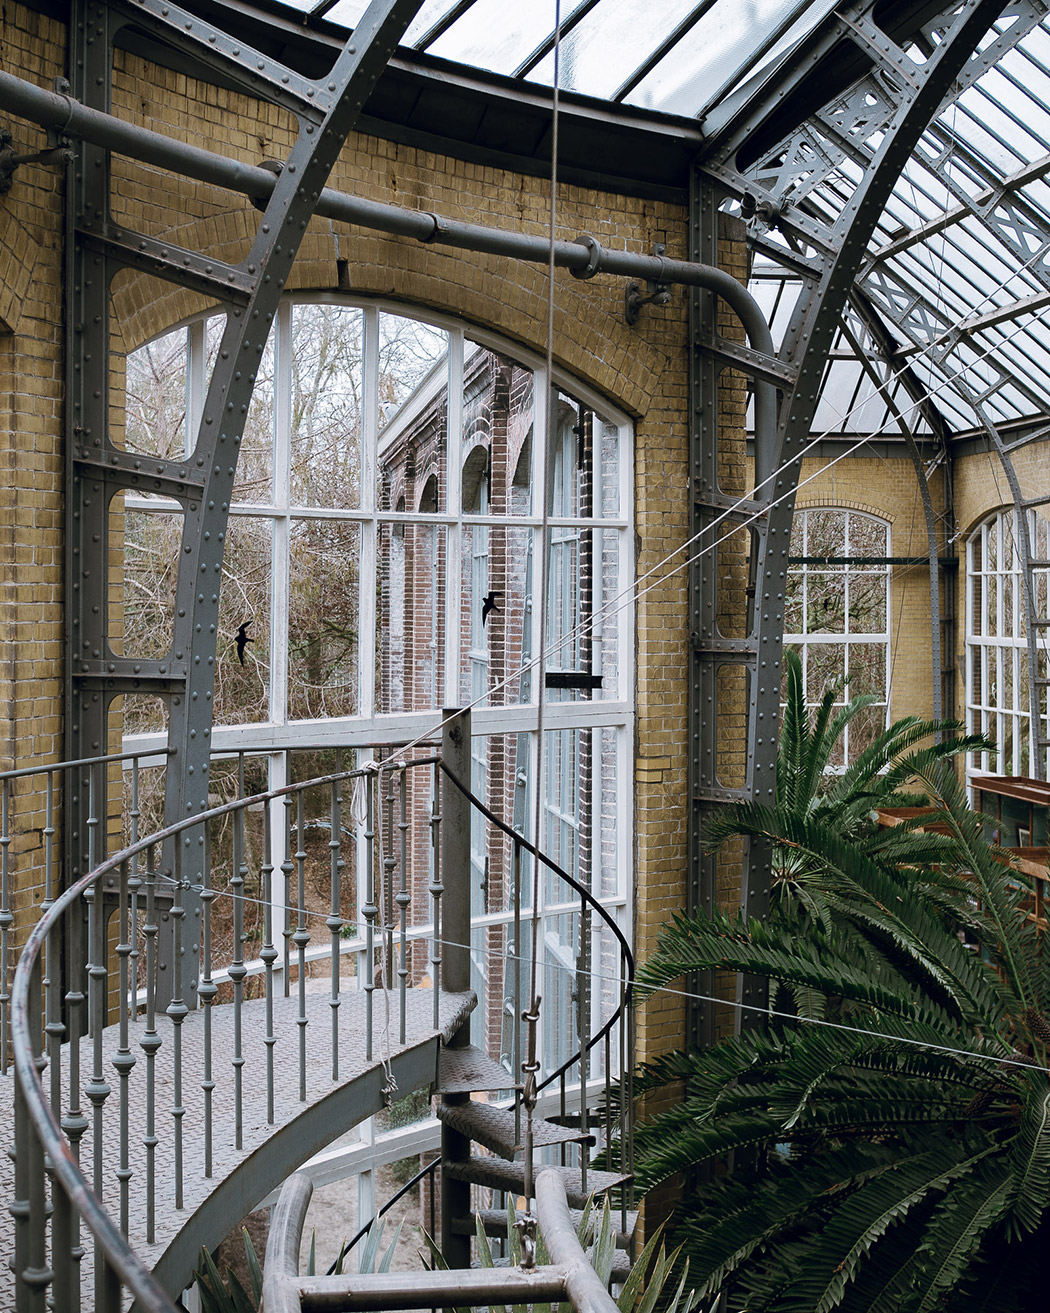 During Our Recent Trip To Amsterdam, We Visited The Botanical Gardens,  Hortus Botanicus. A Beautiful Garden And Series Of Glasshouses In Central  Amsterdam.